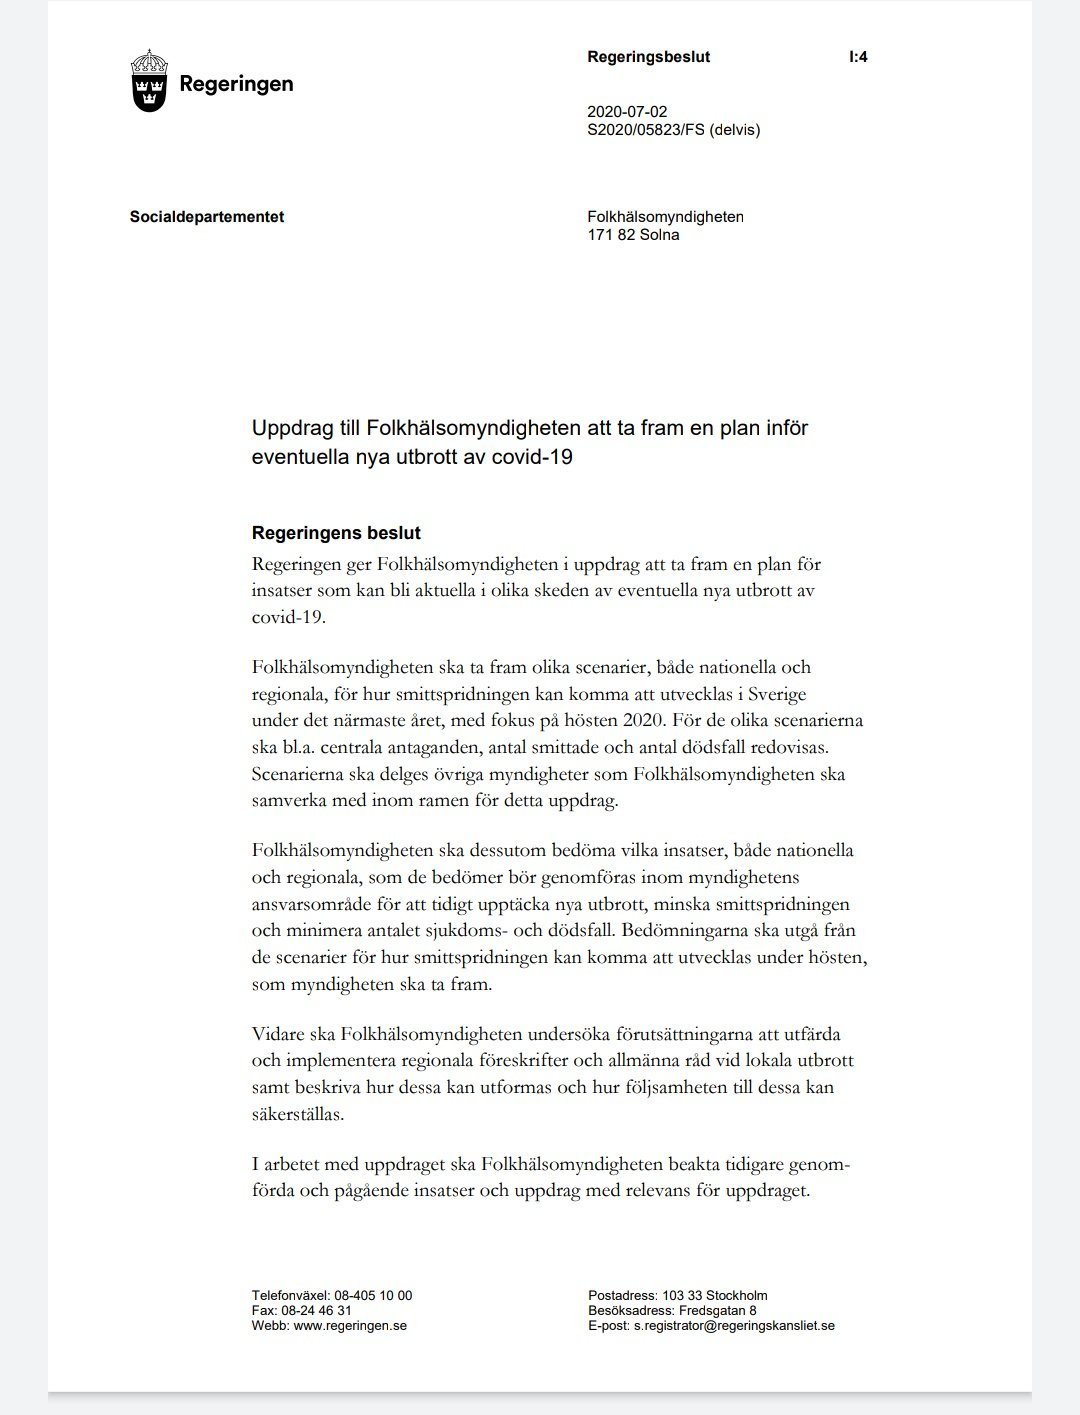 Jana Bergholtz Bytstrateginu On Twitter On 2 July 2020 The Government Gave The Swedish Public Health Agency The Official Task To Prepare Three Potential Covid19 Scenarios For The Fall Winter And Suggest Measures